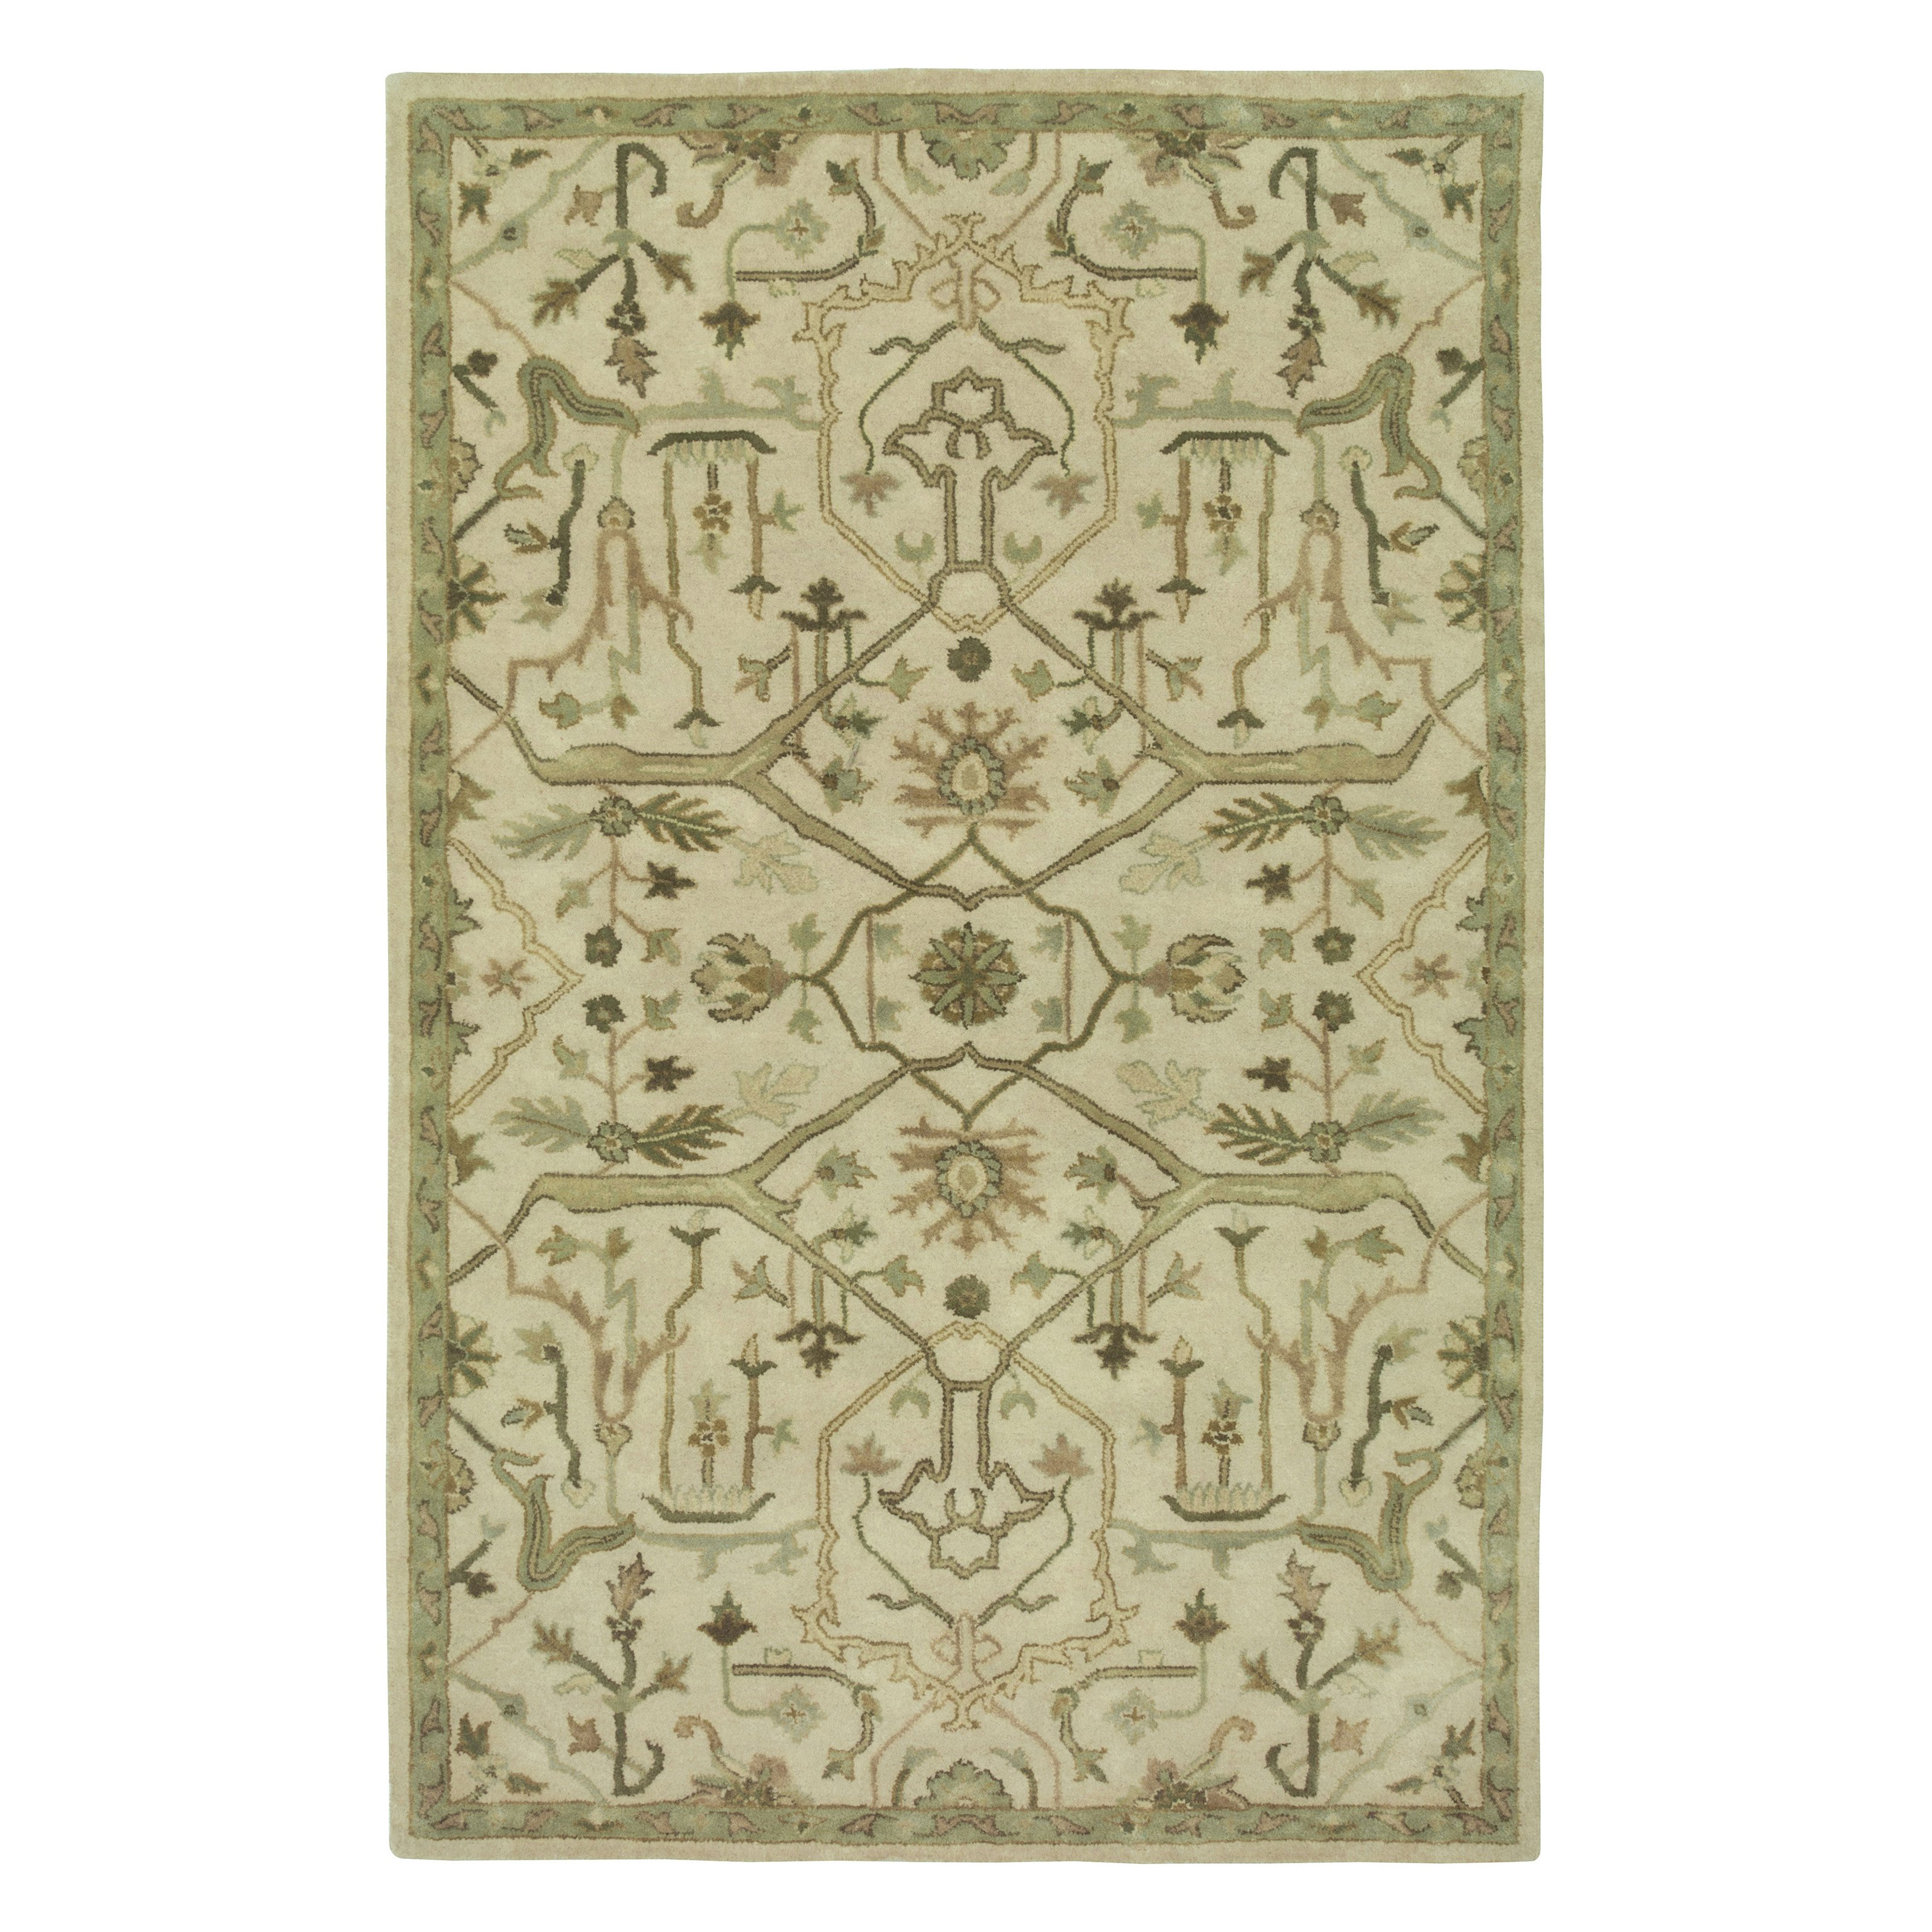 LR Resources Majestic HN9305 Rug